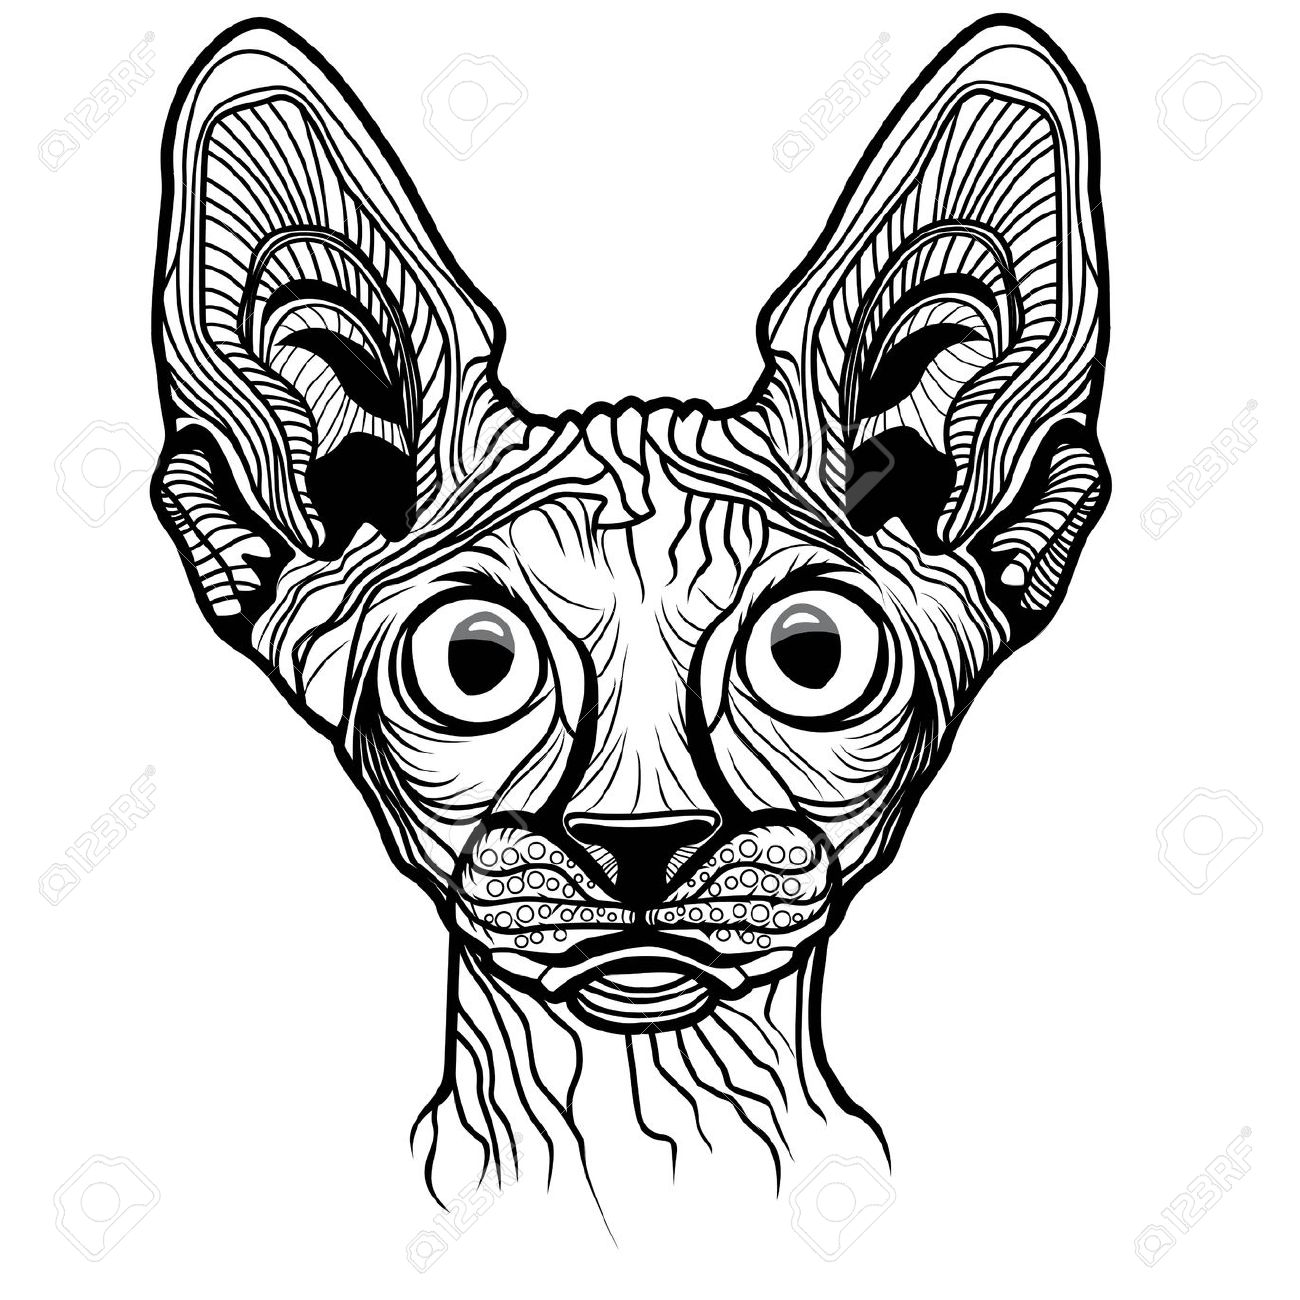 Sphynx clipart #16, Download drawings